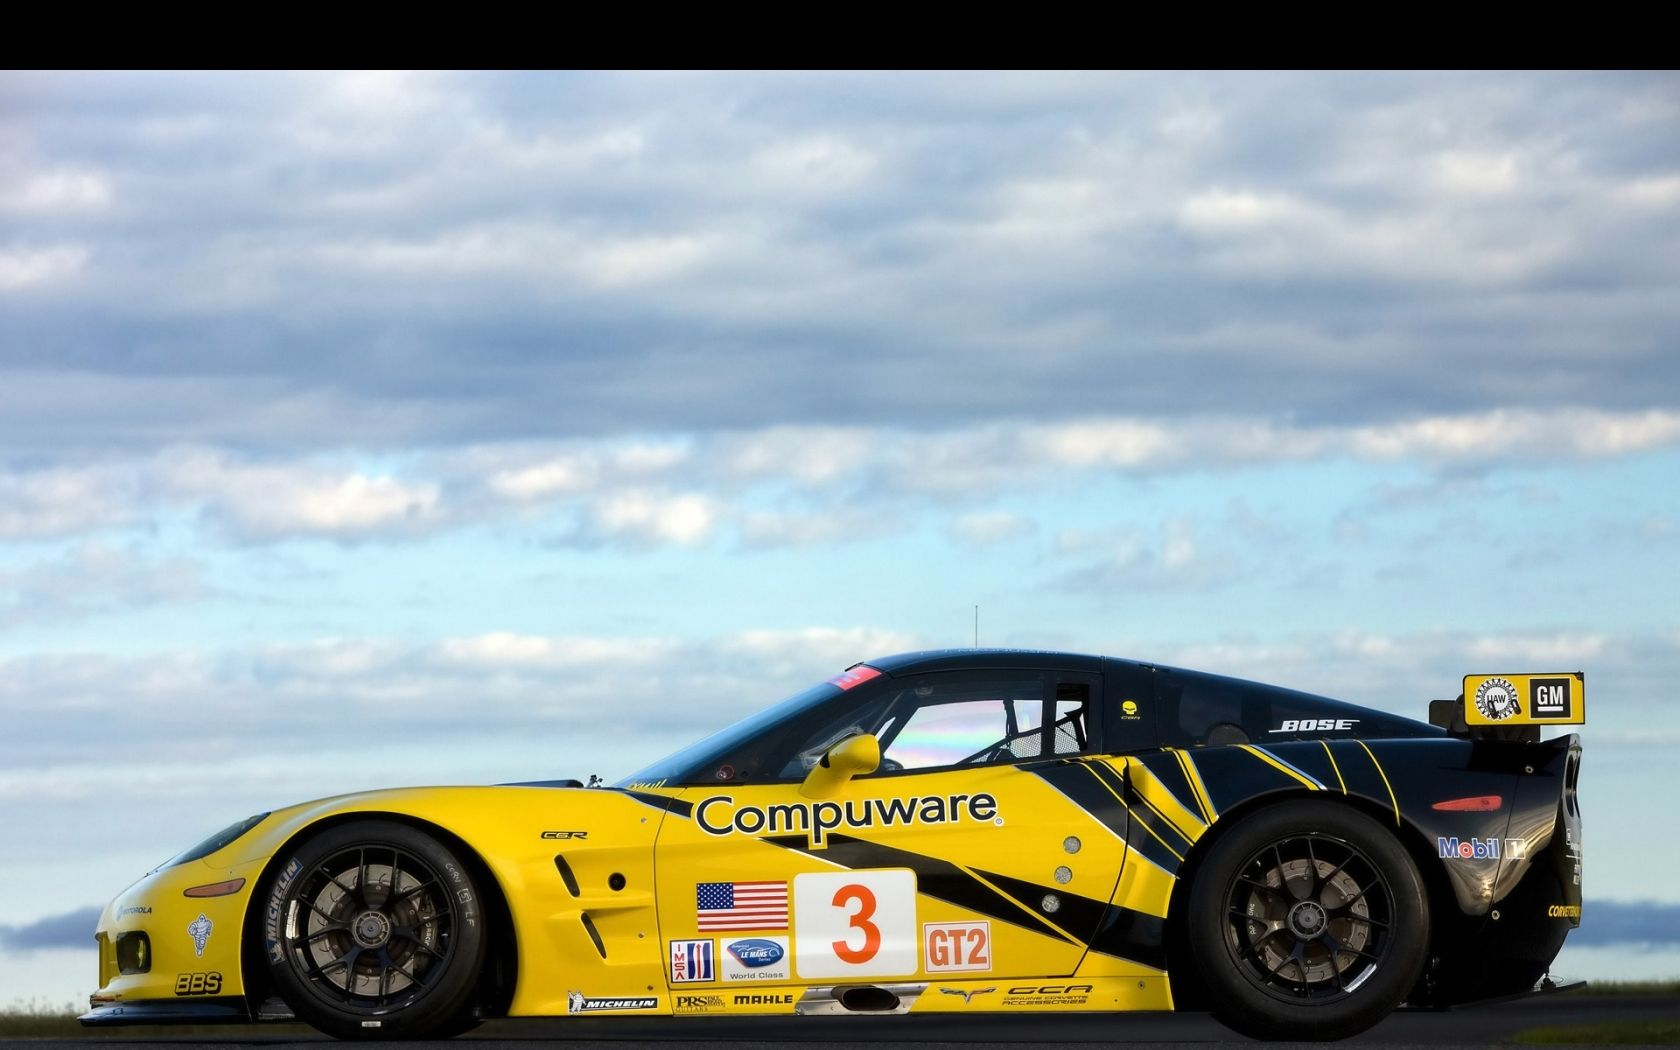 Corvette Wallpaper Art Hd Wallpaper Corvette Race Car